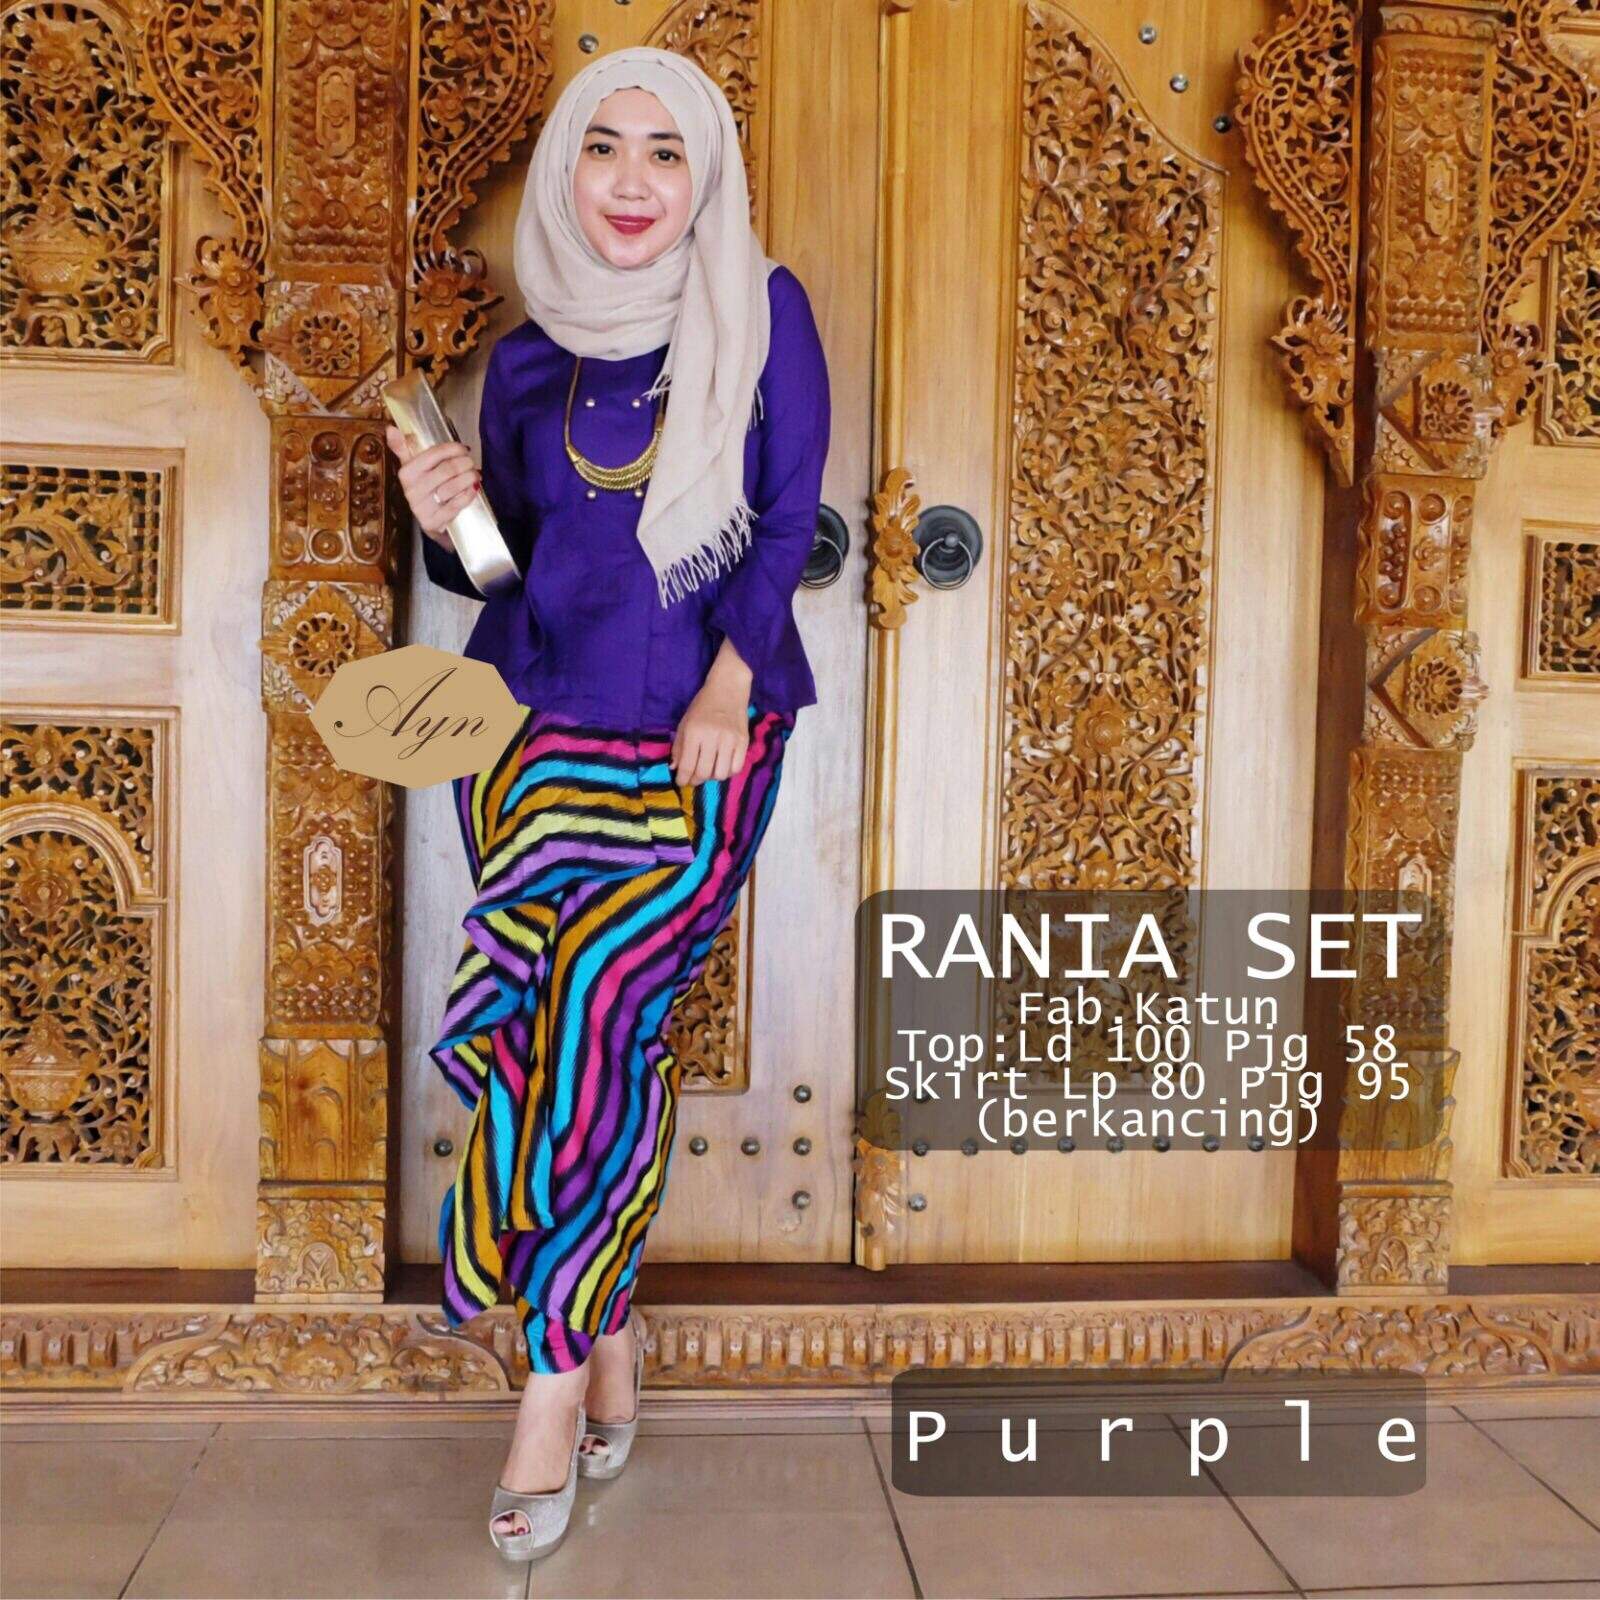 Supplier hijab : rania set ori ayn